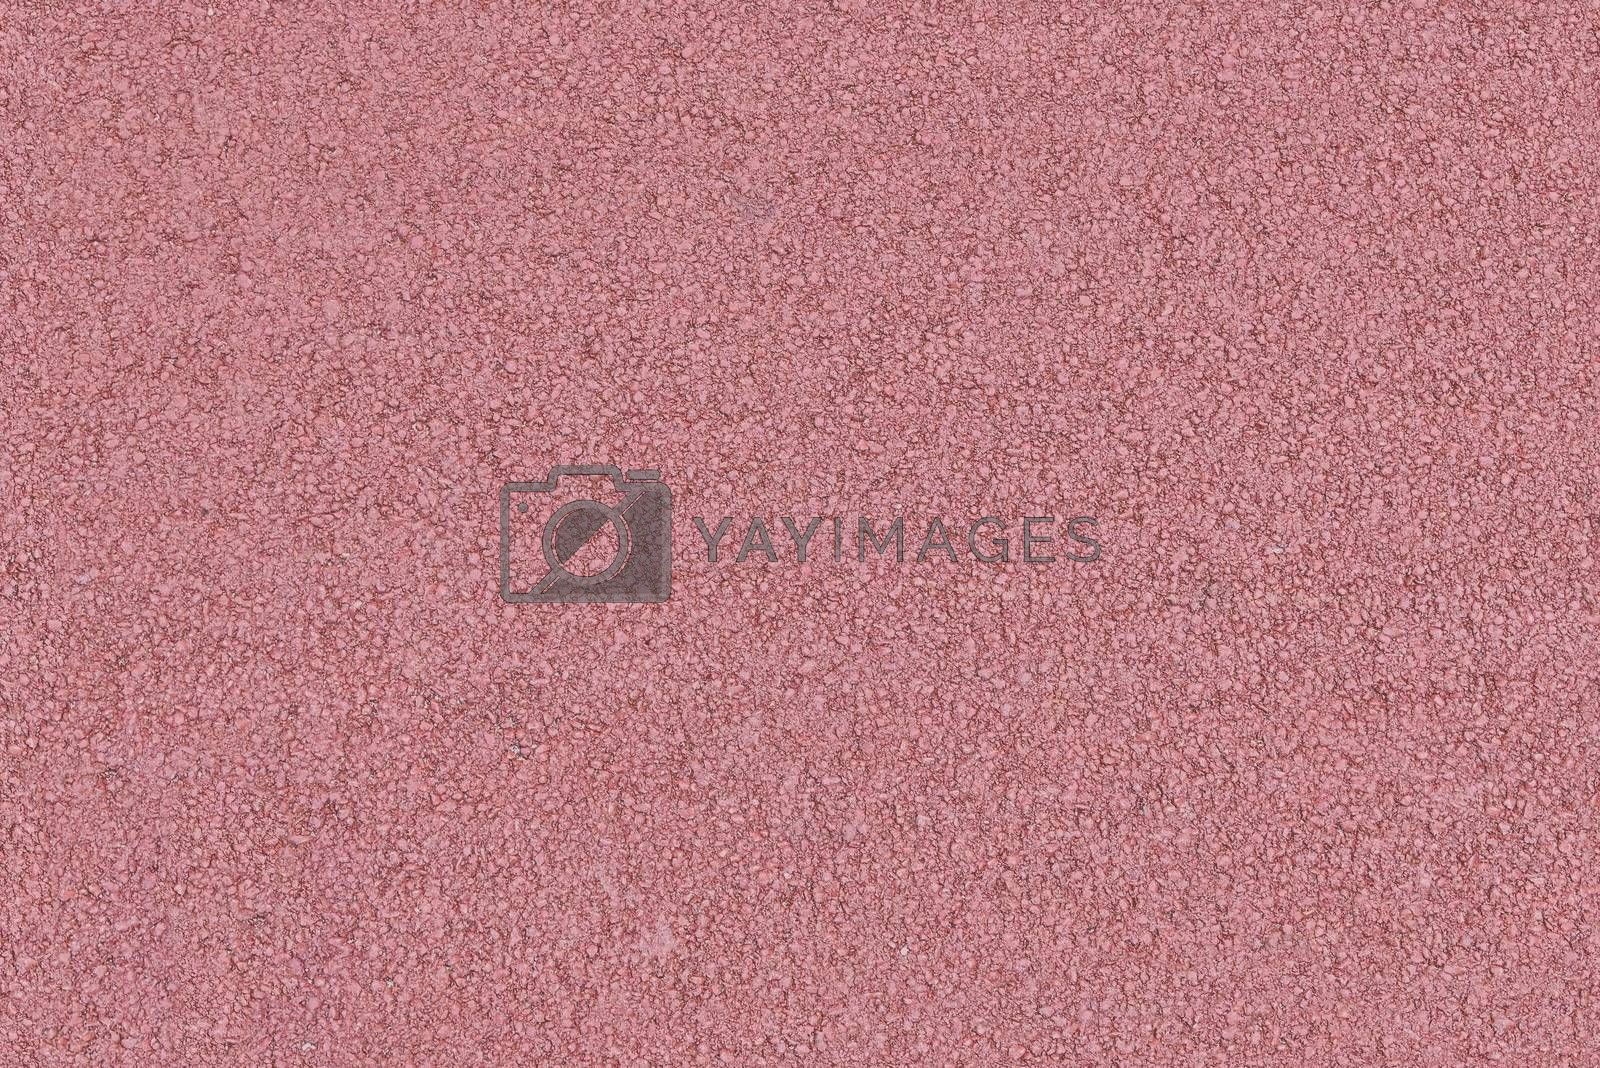 Seamless detailed background or texture made of red colored asphalt